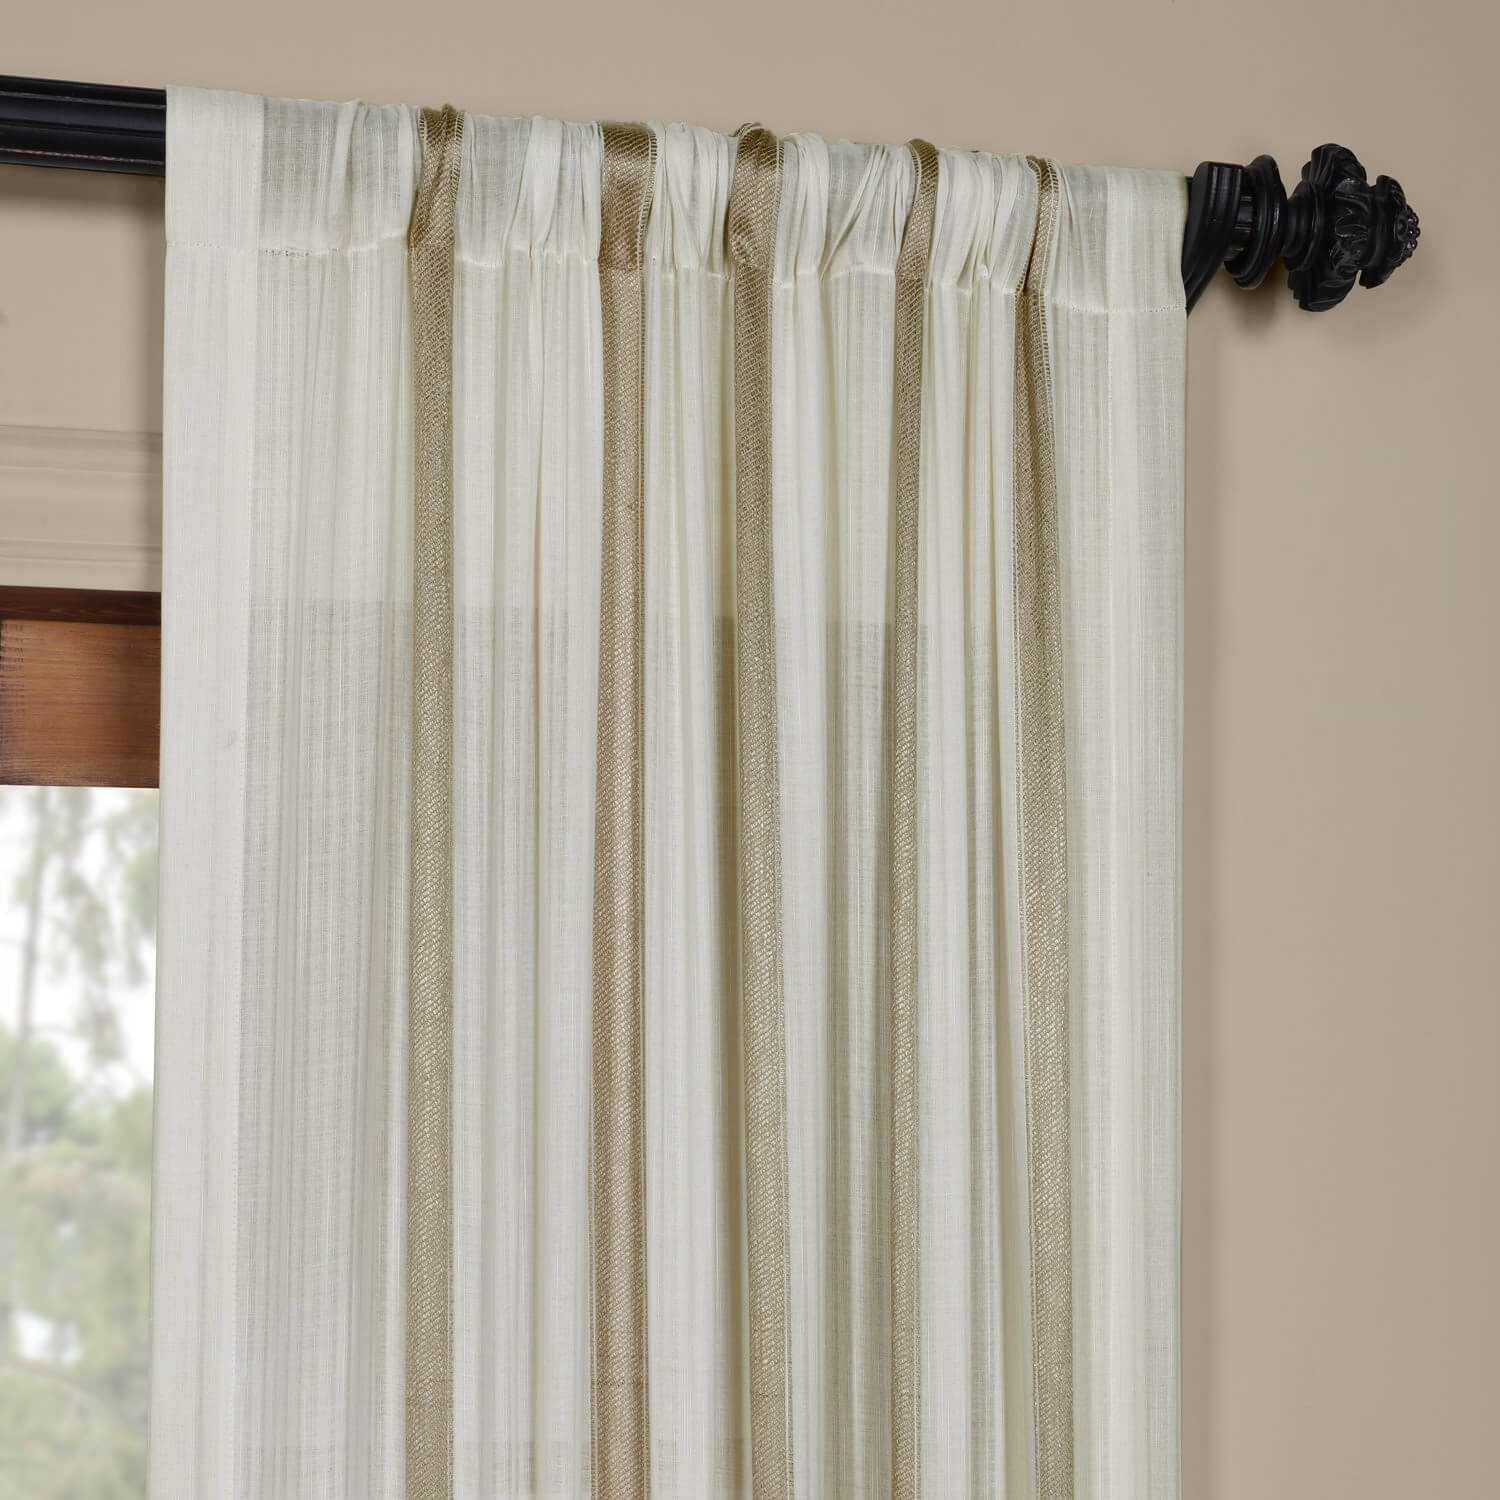 Buy Antigua Gold Striped Linen Sheer Curtain Amp Drapes